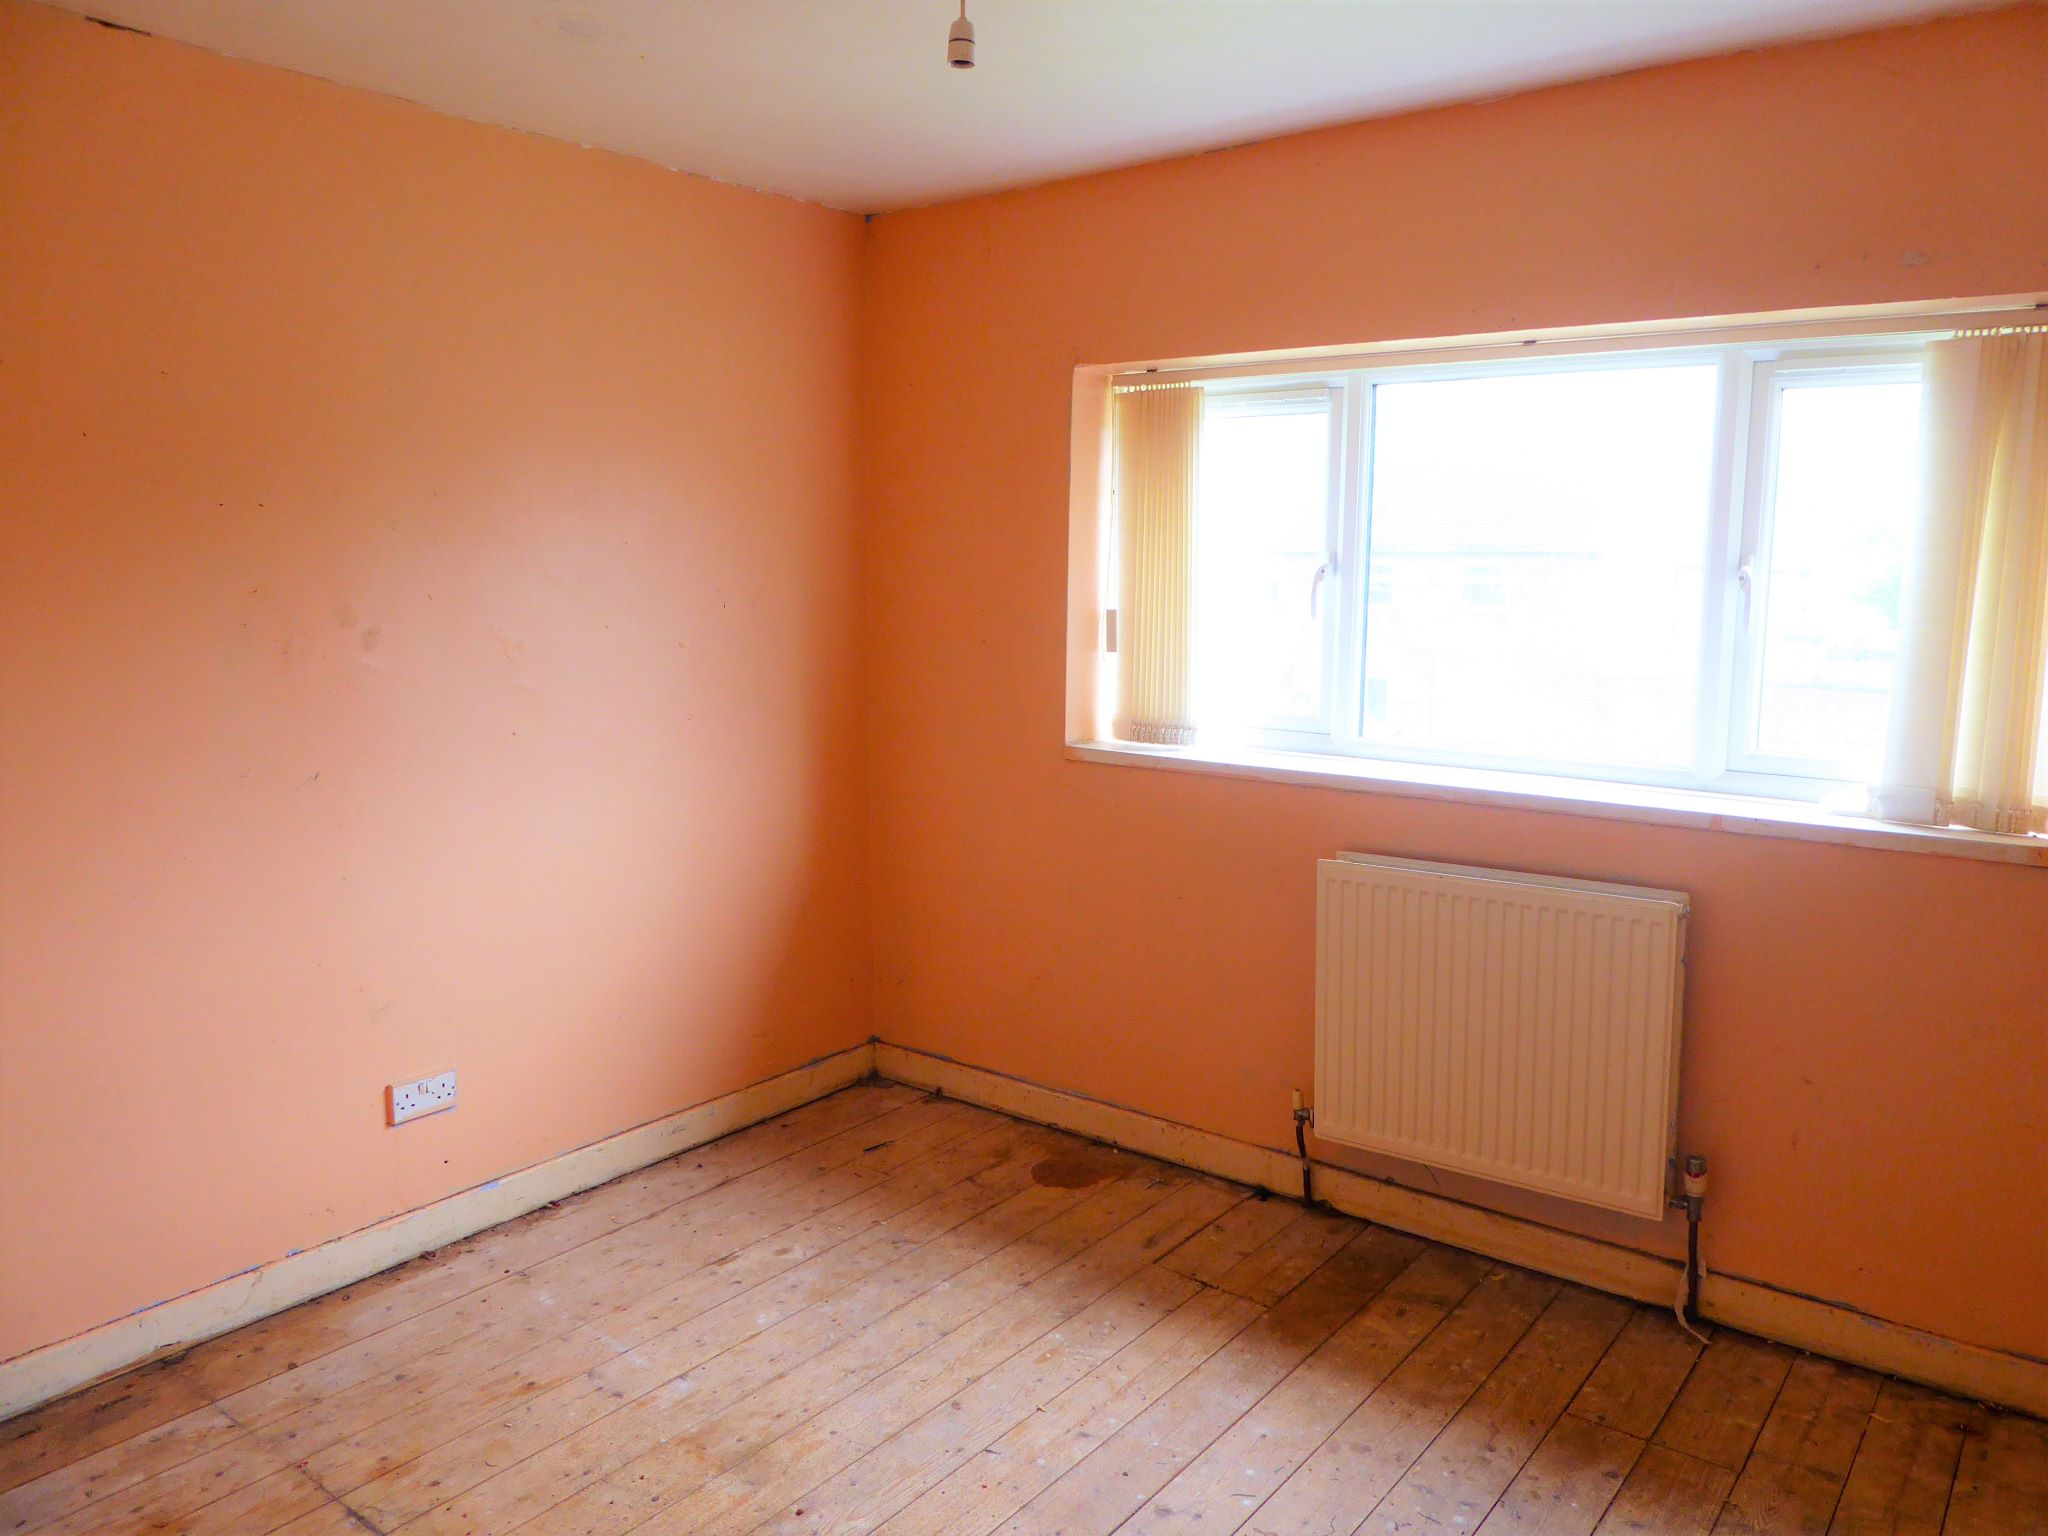 3 bedroom mid terraced house SSTC in Abergele - Photograph 6